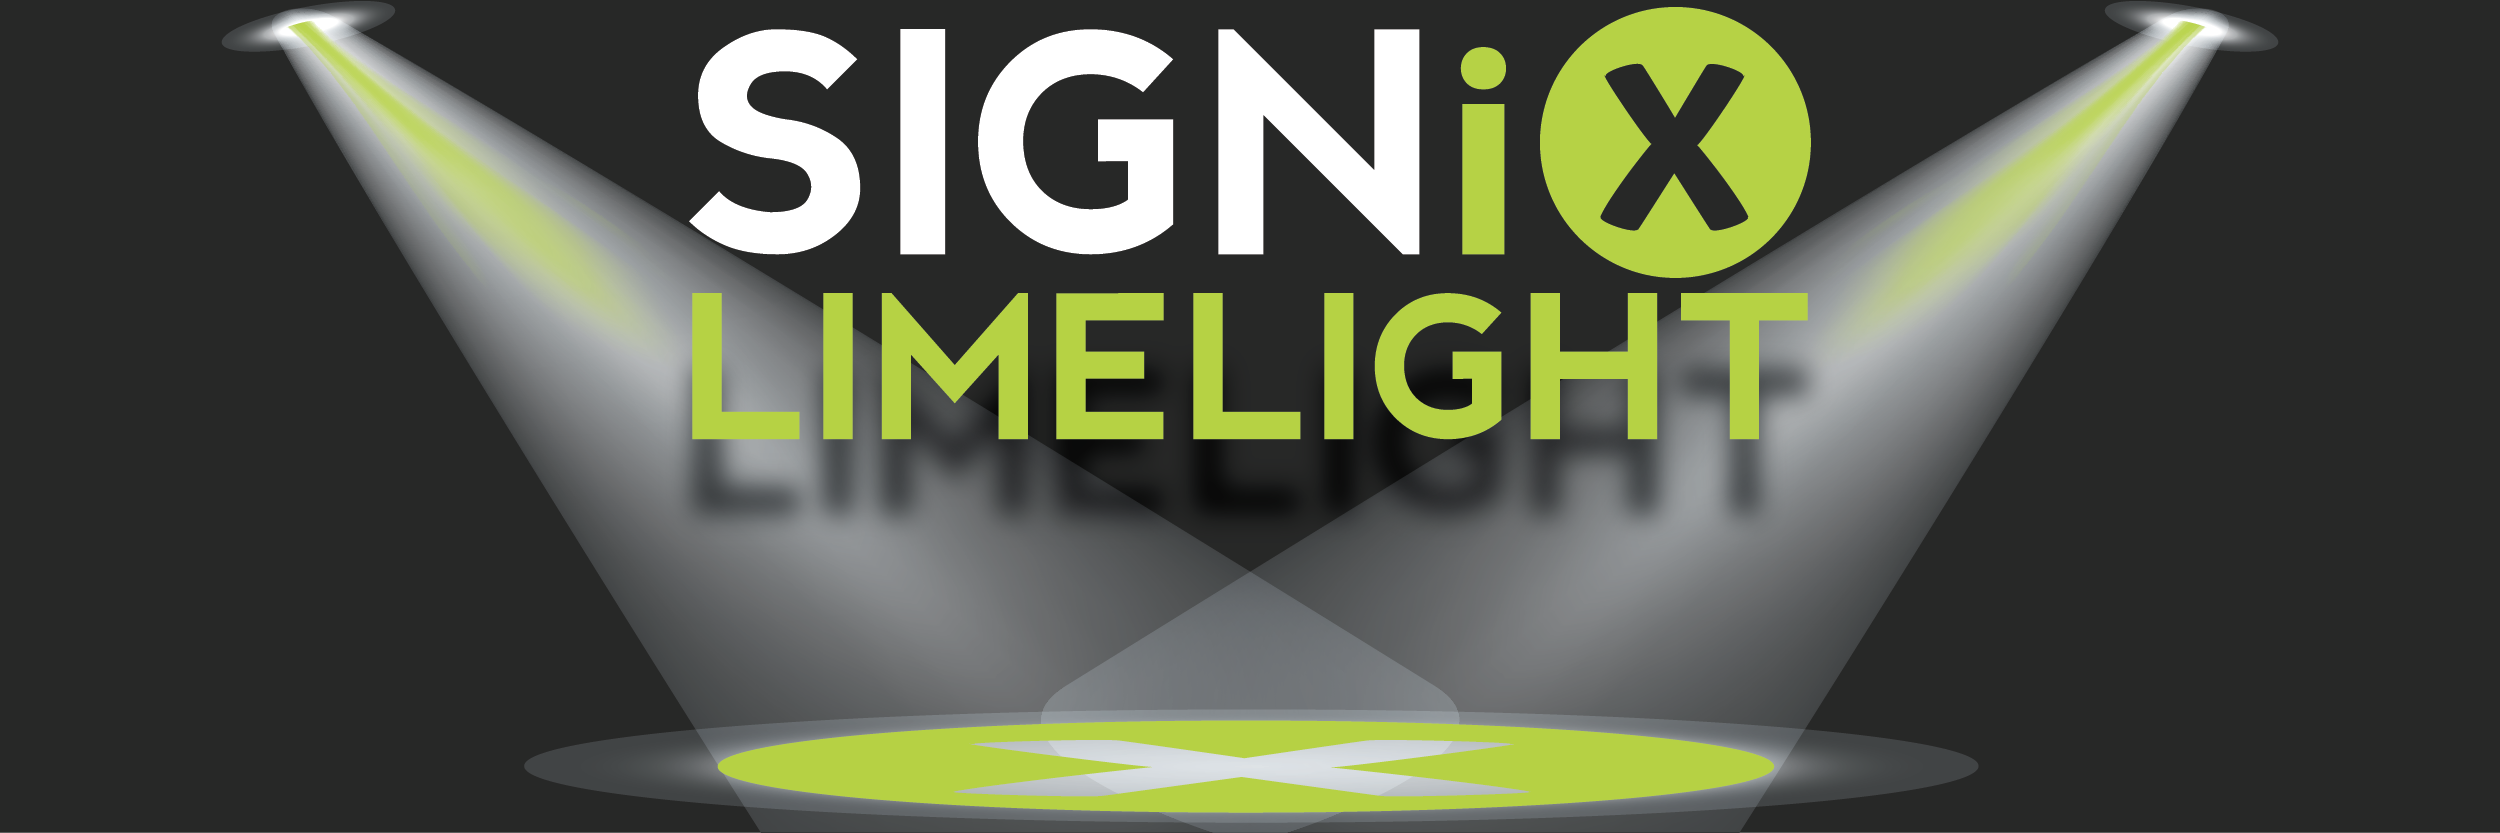 SIGNiX Limelight: Q&A with Leonora Zilkha Williamson